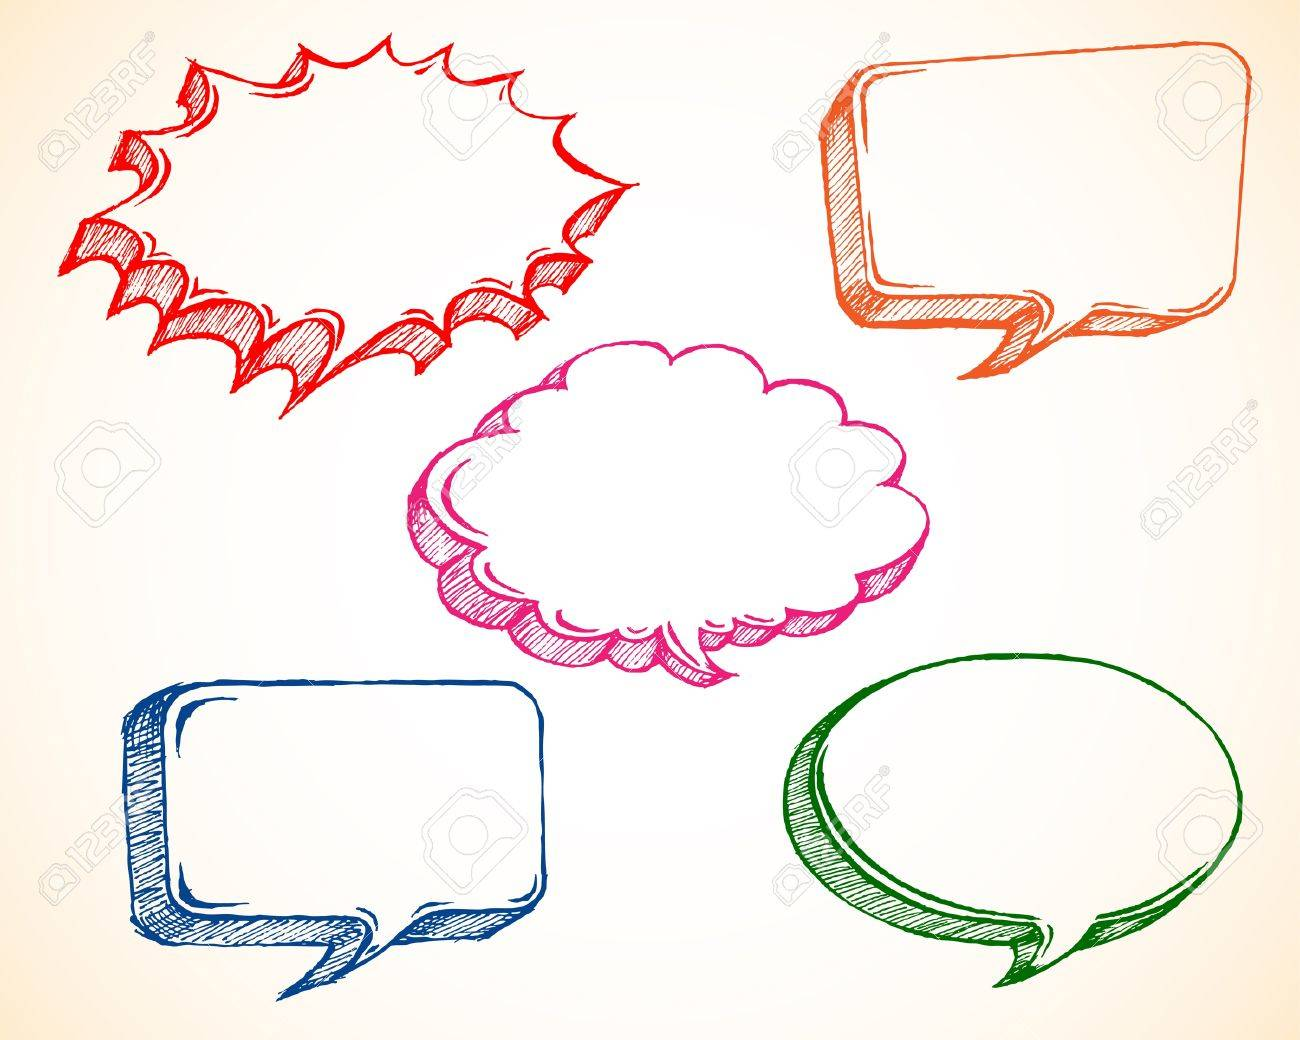 Sketchy Speech Bubble Stock Vector - 9155661